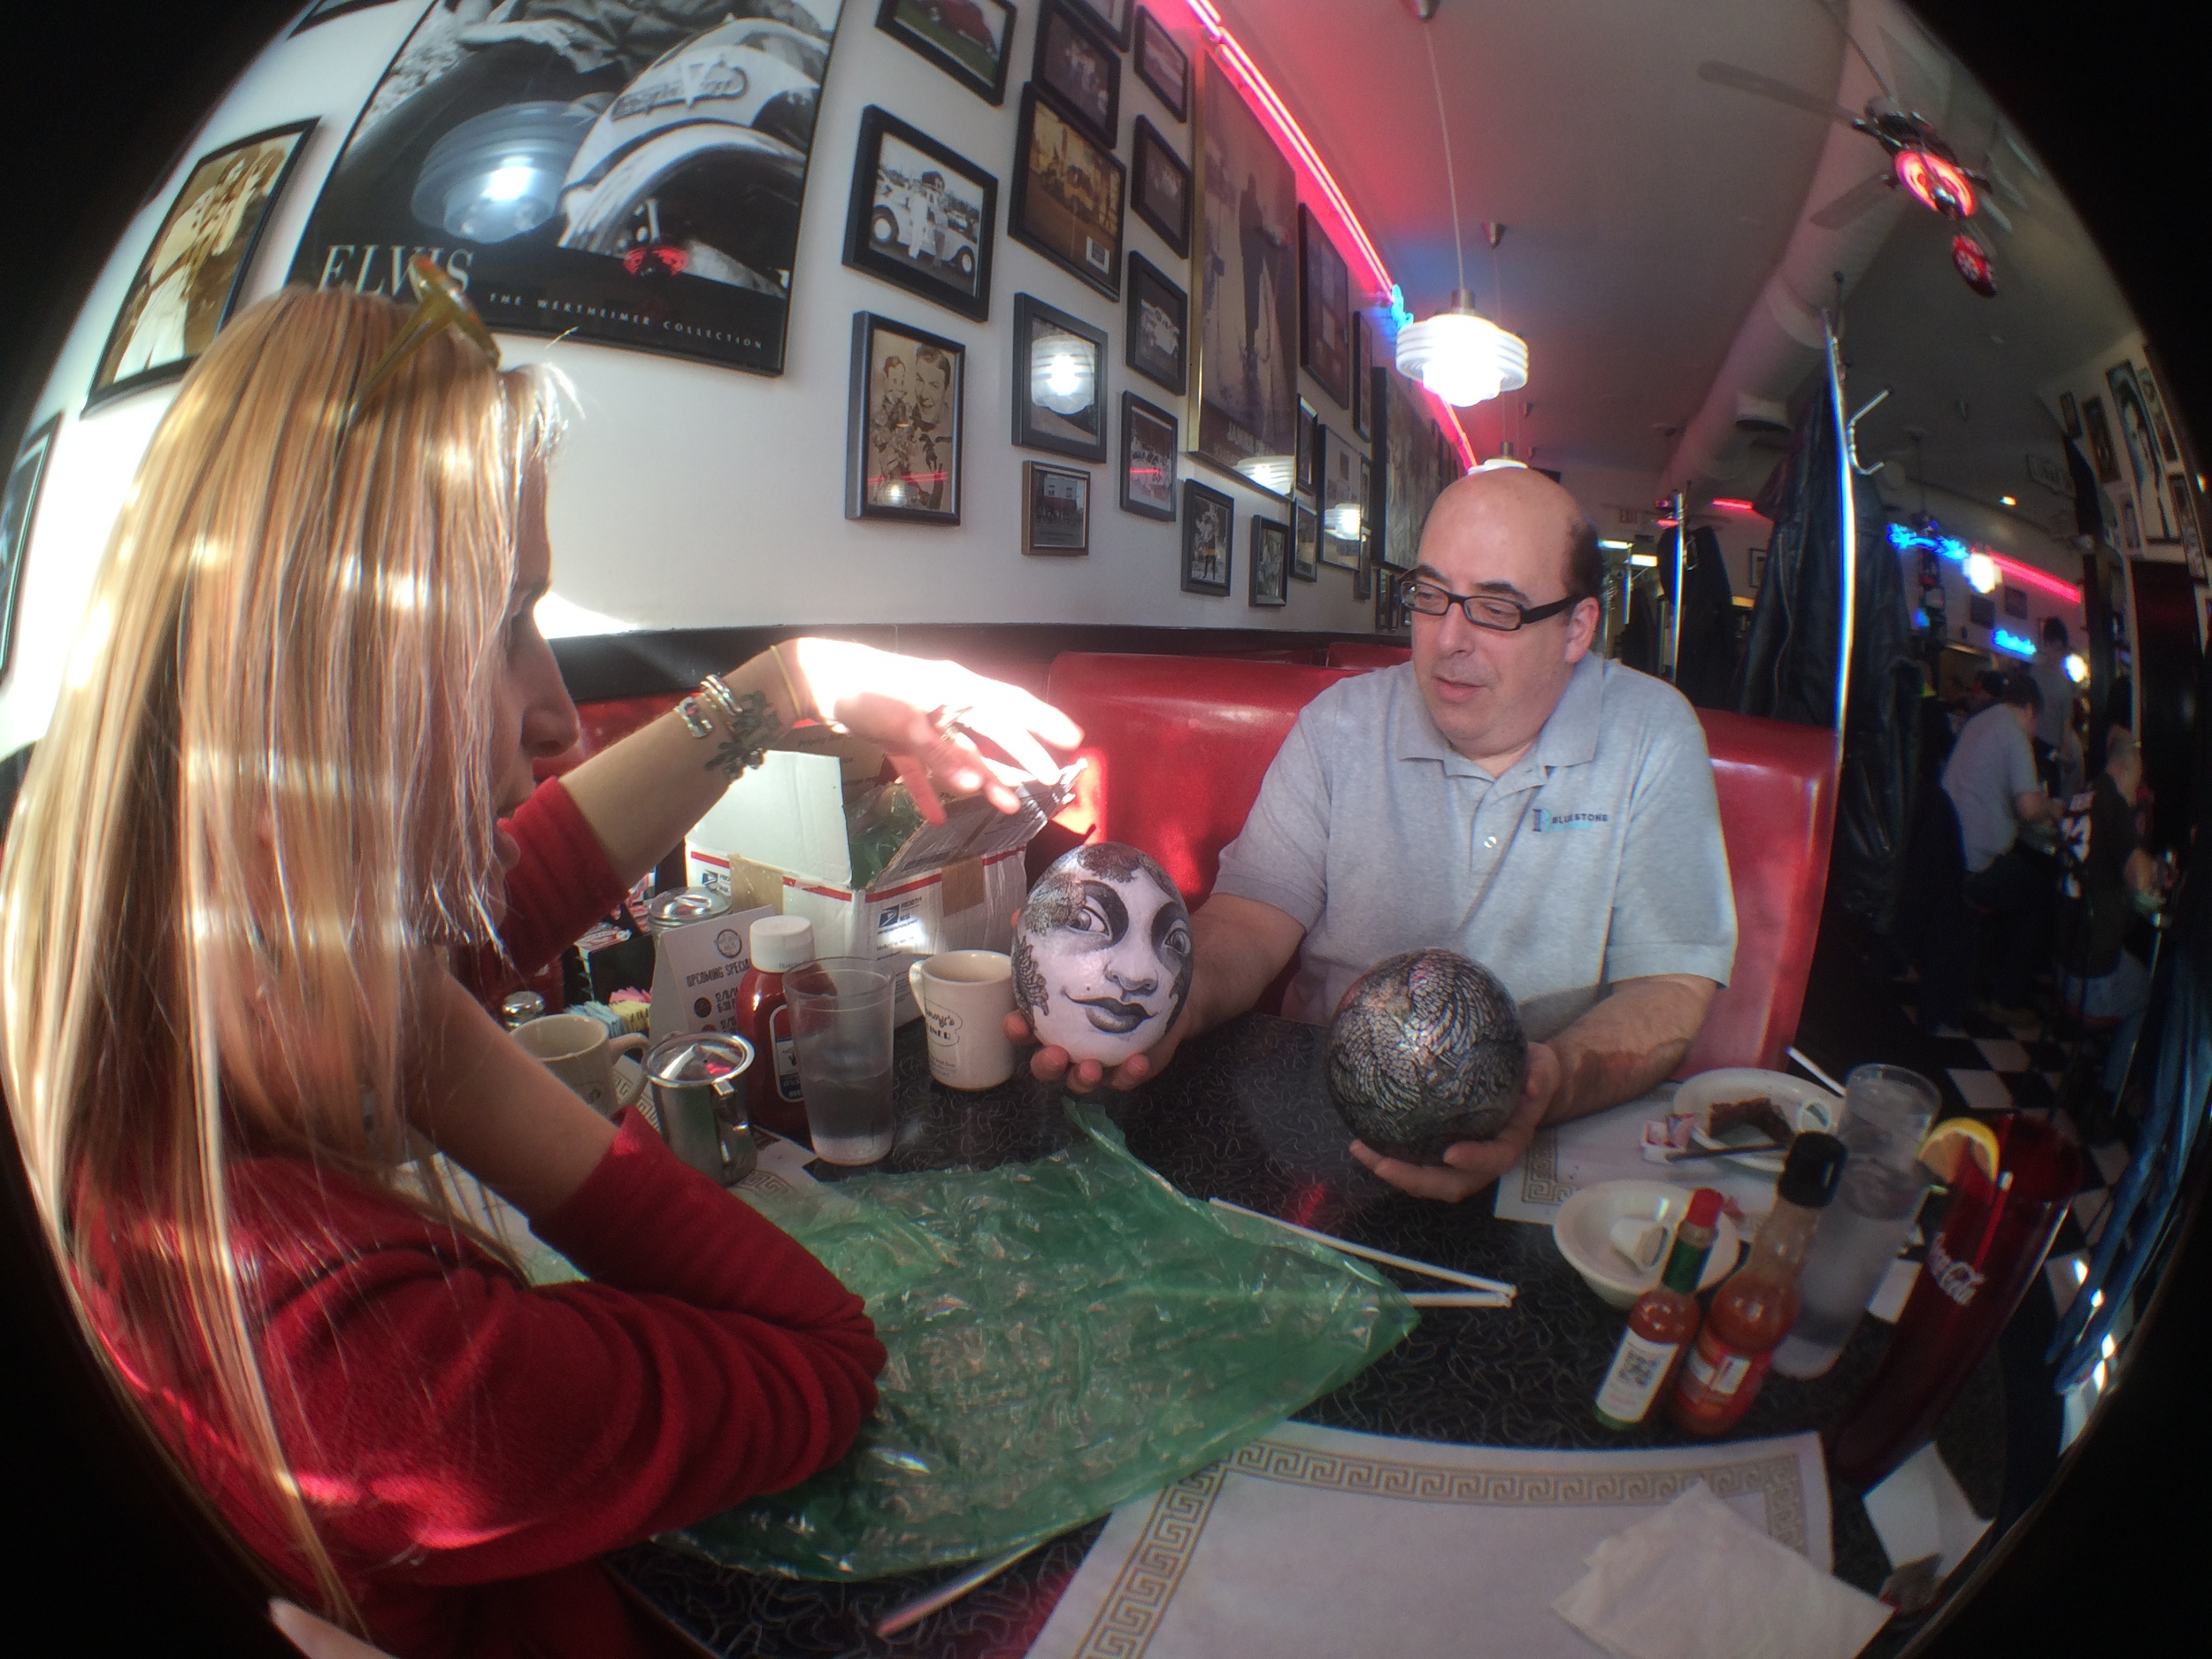 Discussing techniques with Charles Bluestone at Tommy's Diner in Columbus, OH. The egg in his left hand, the male companion to the female shown,will be included in the exhibit.